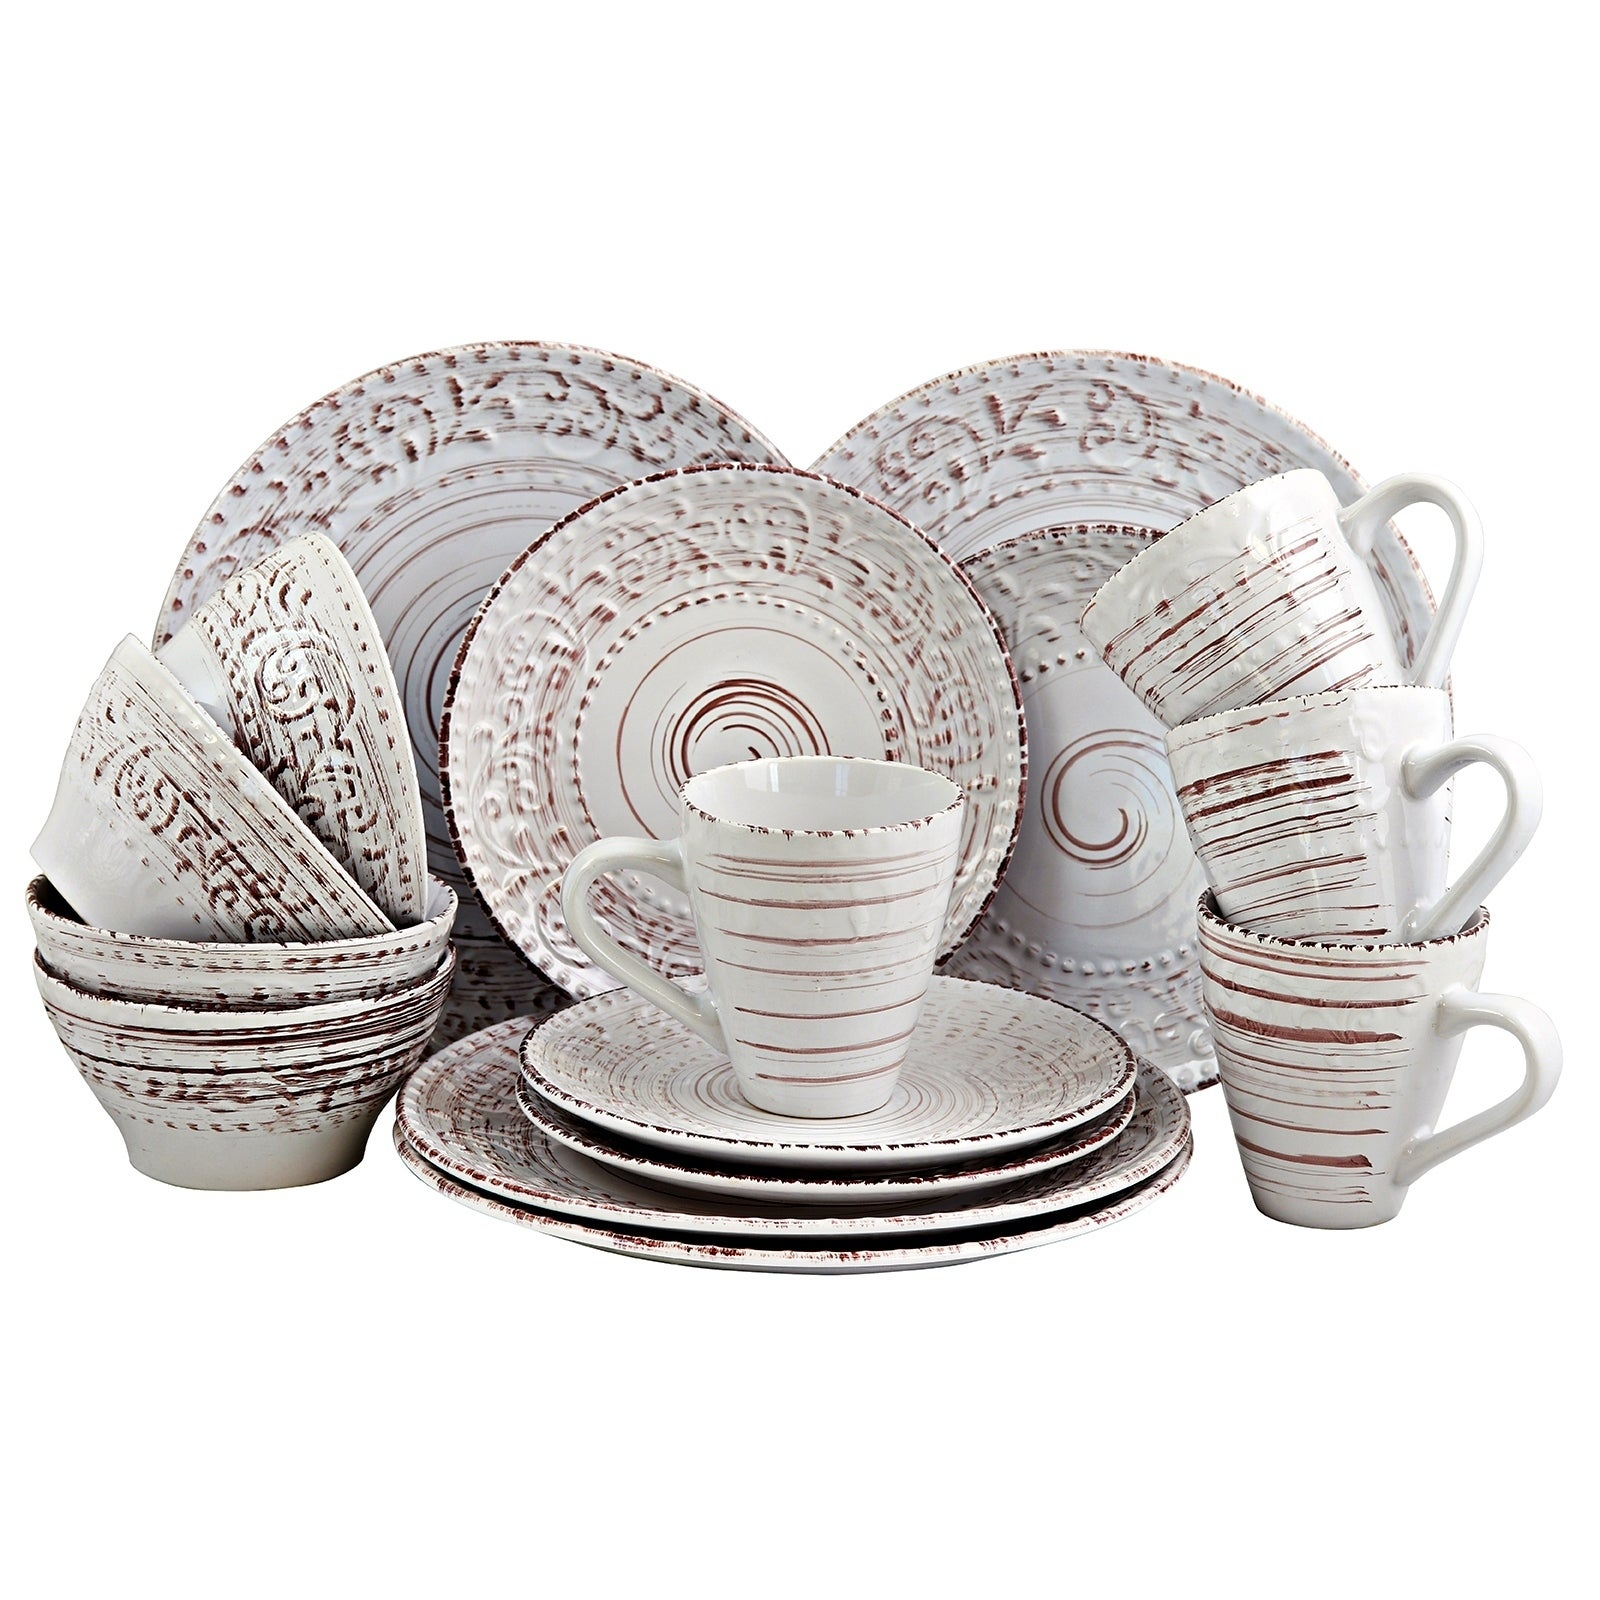 Casual Dinnerware Set Dishwasher Safe Off-White Textured Stoneware (16-Piece)  sc 1 st  eBay : casual dinnerware set - Pezcame.Com